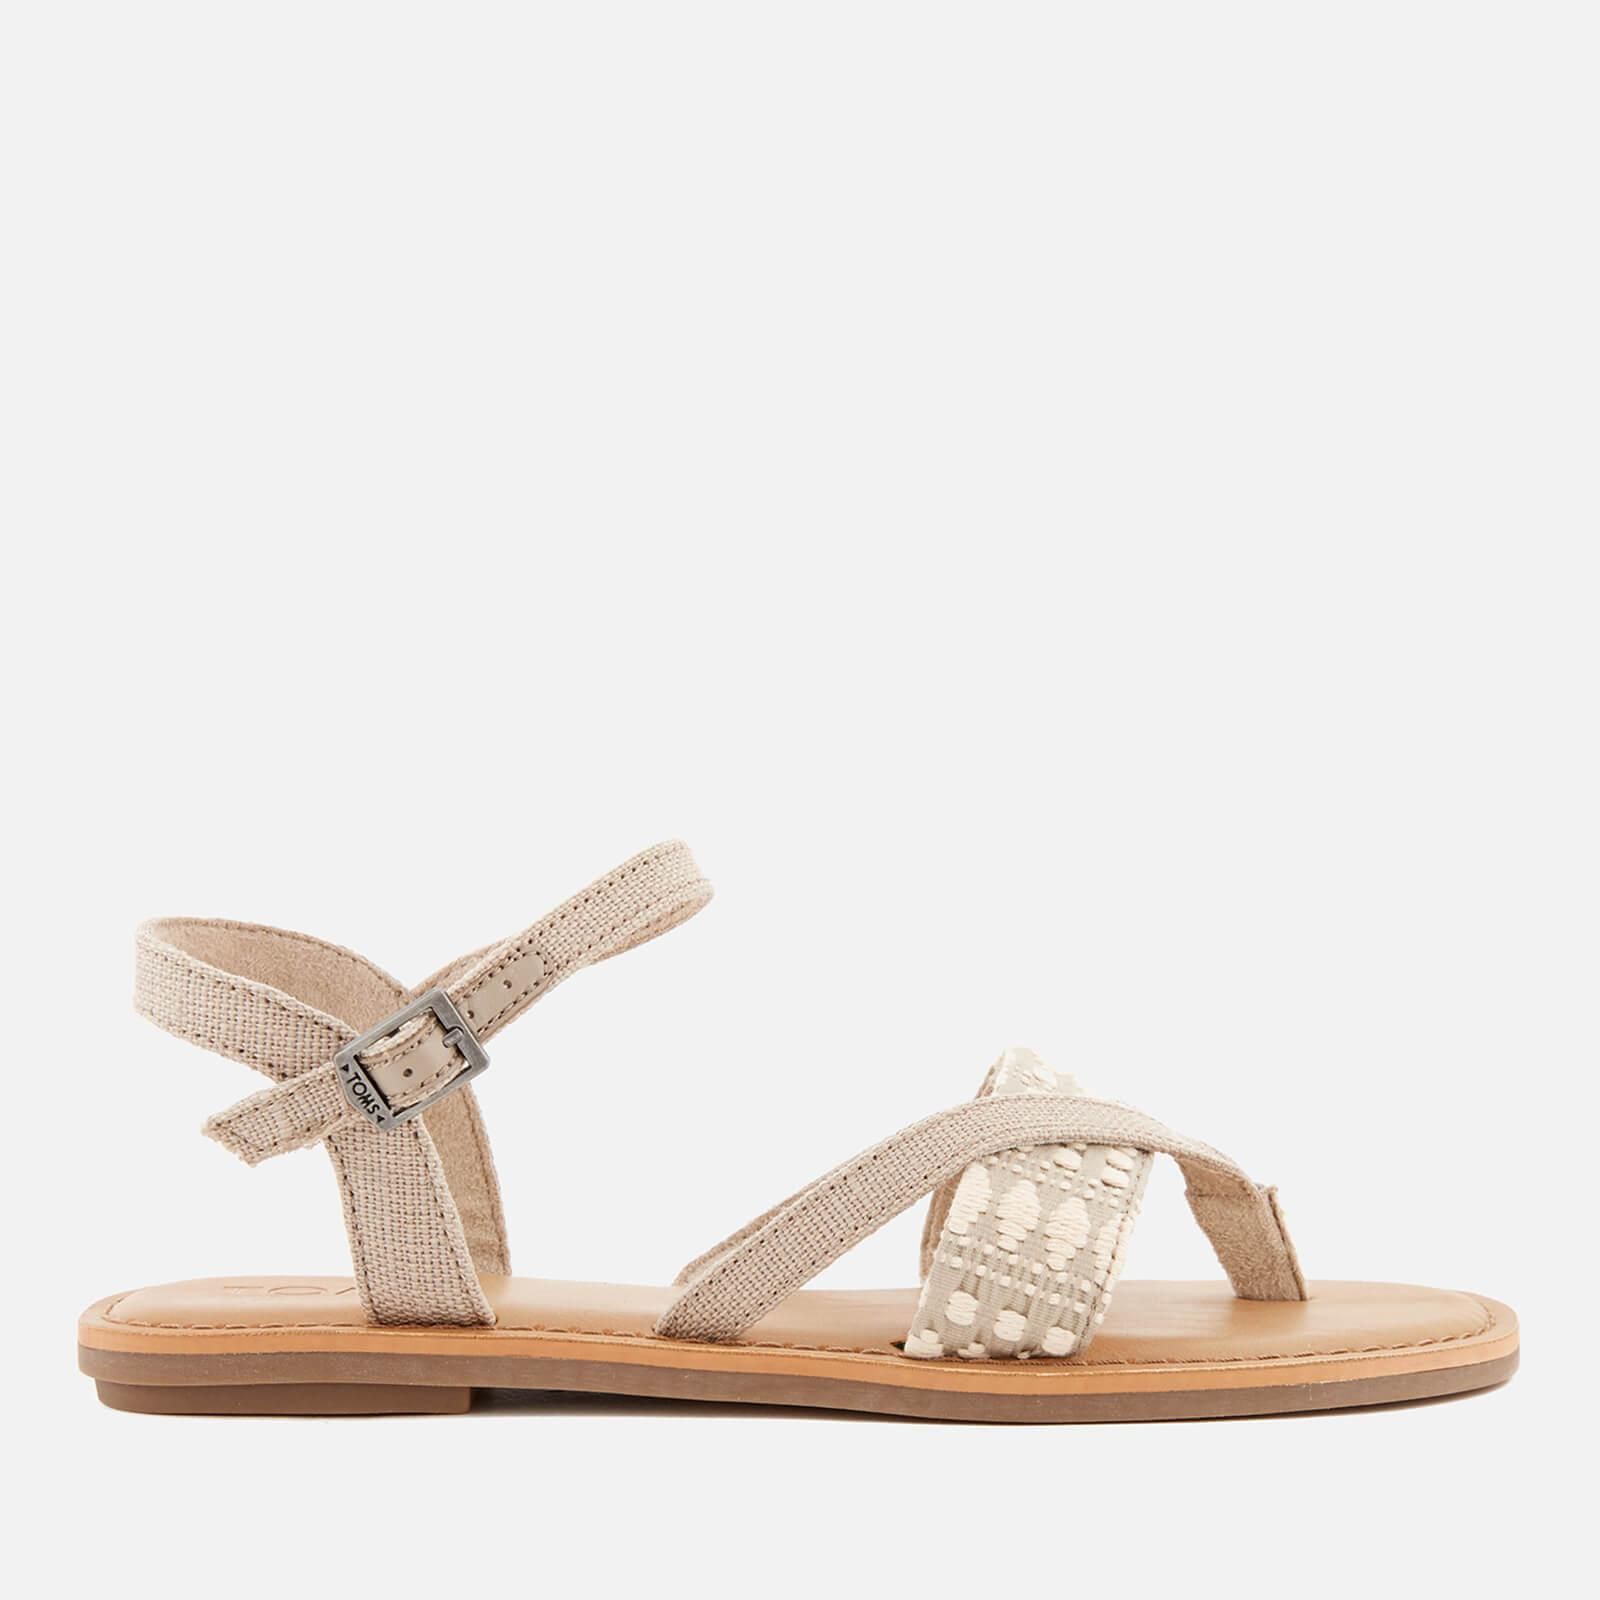 43b8527bf271d Lyst - TOMS Lexie Strappy Sandals in Natural